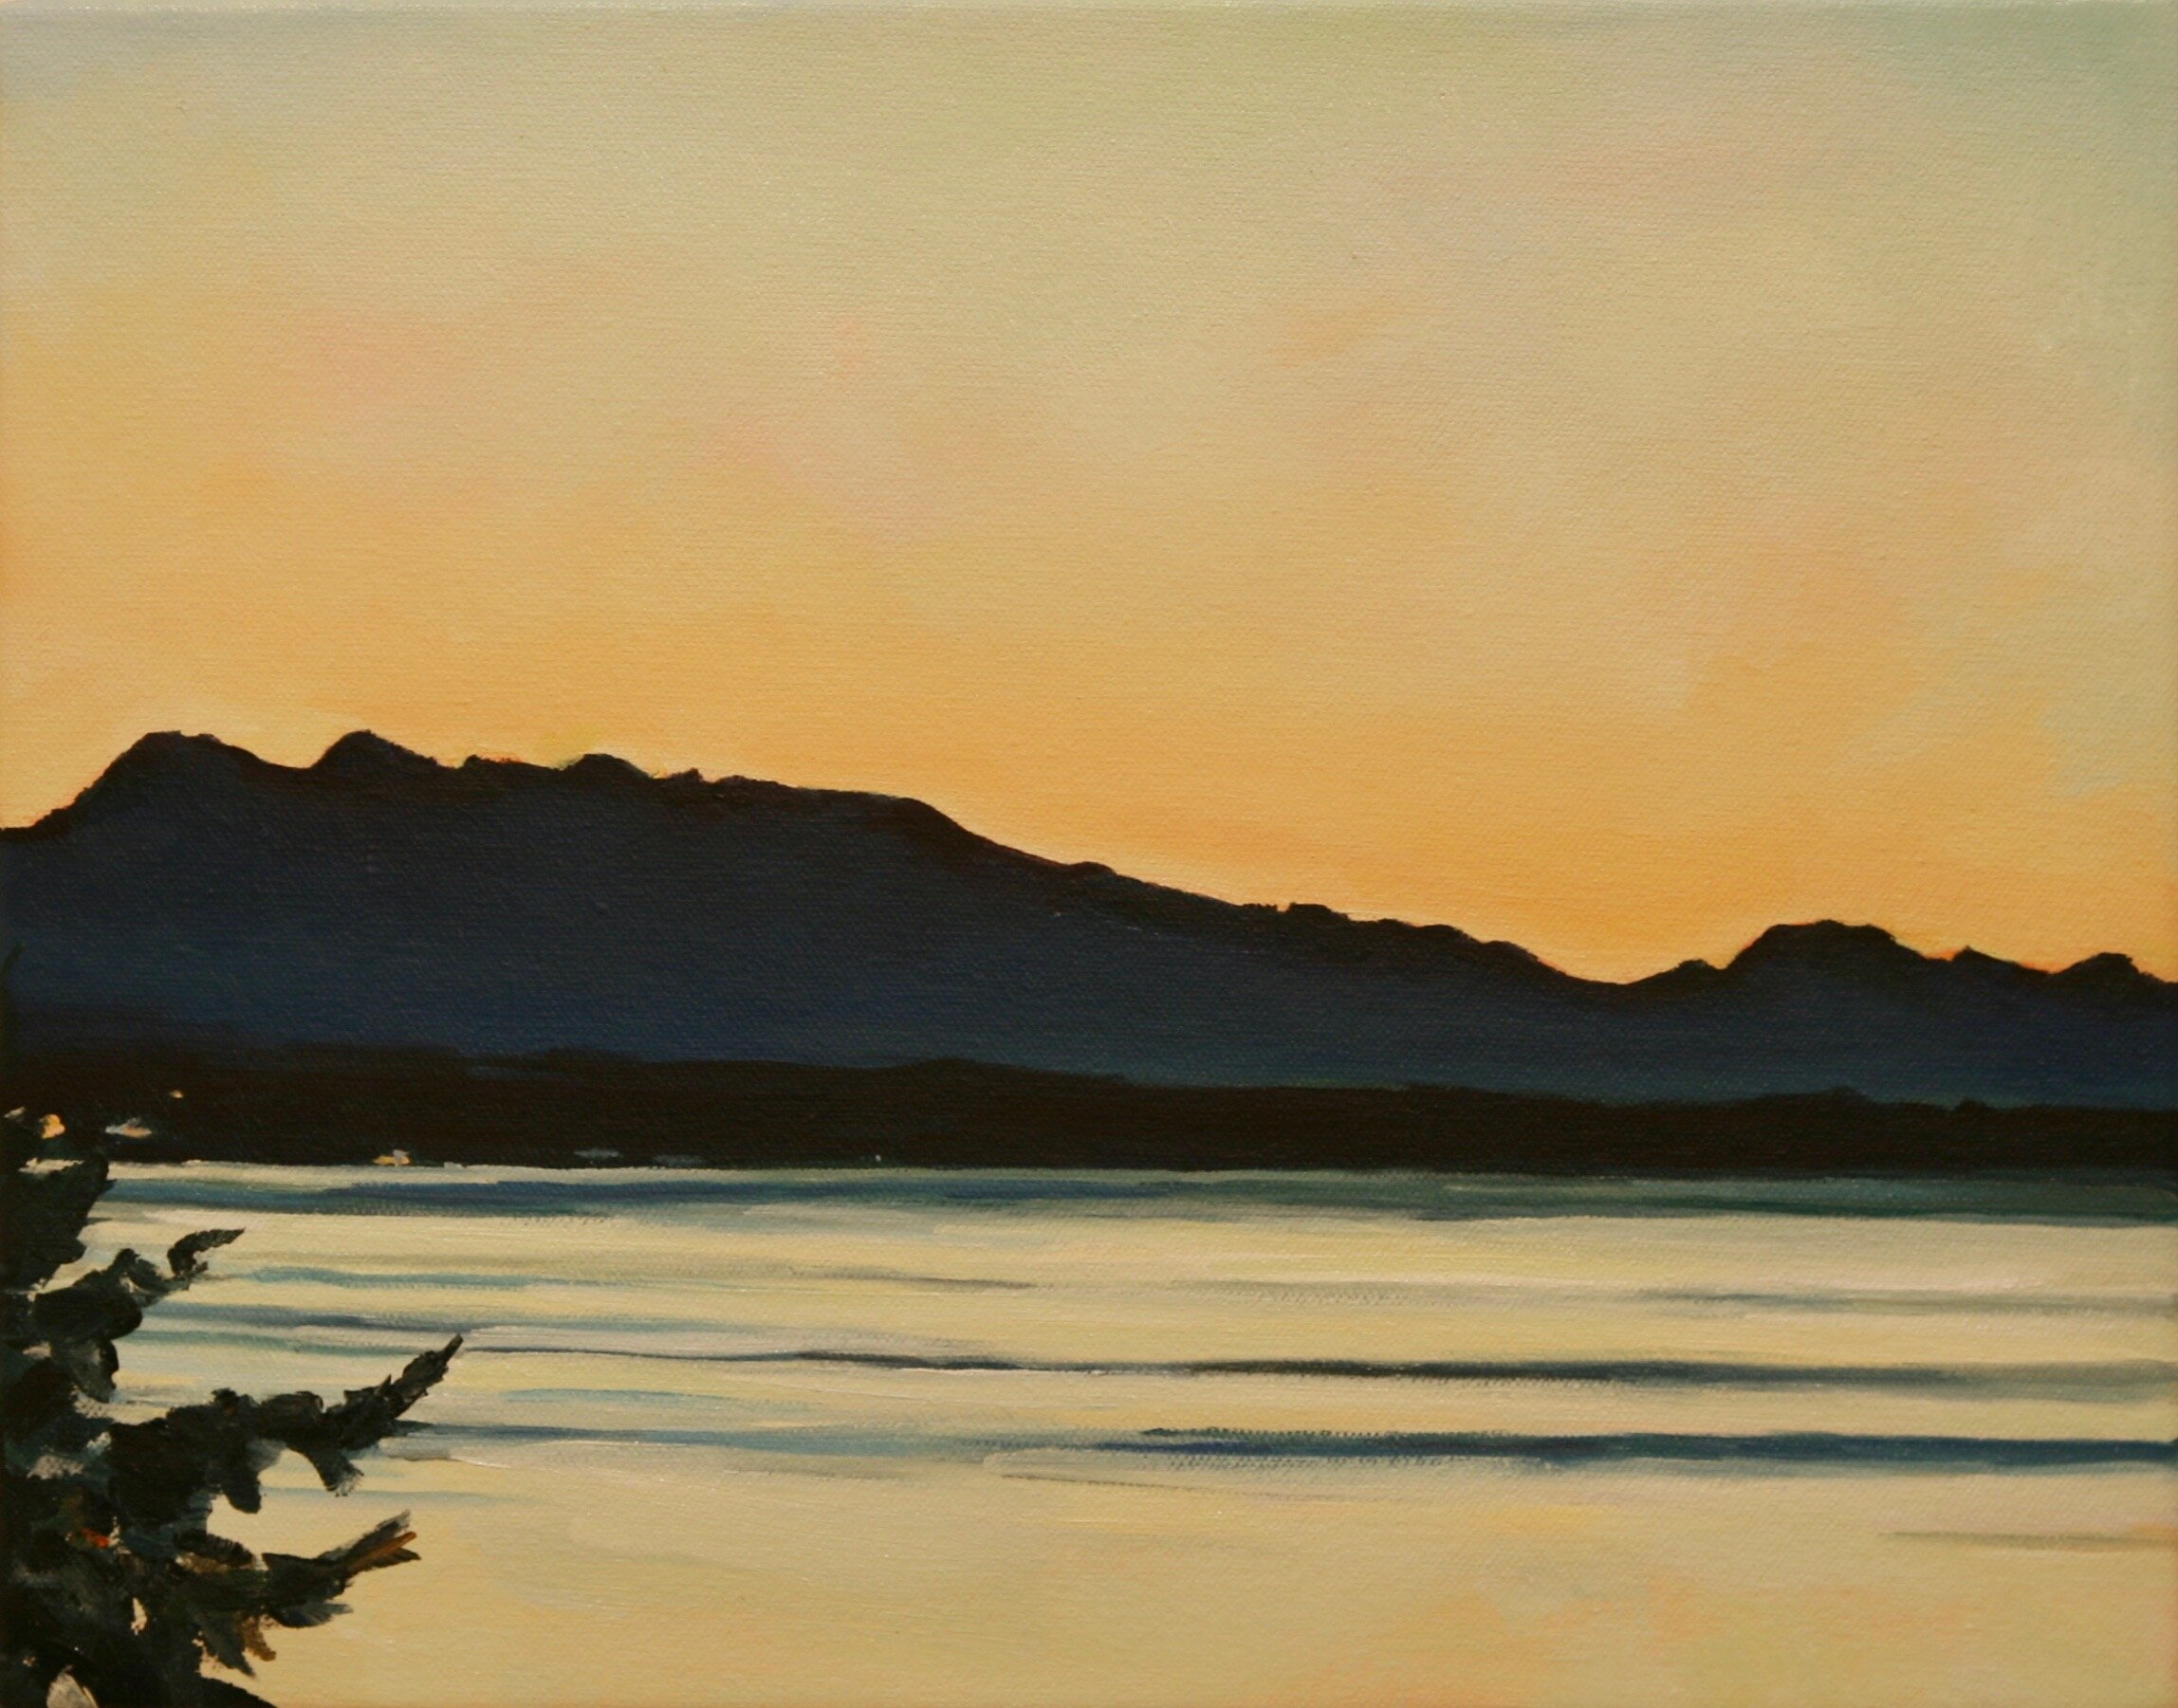 """'Whidbey'  2017  14"""" x 11""""  water soluble oil on canvas  sold"""